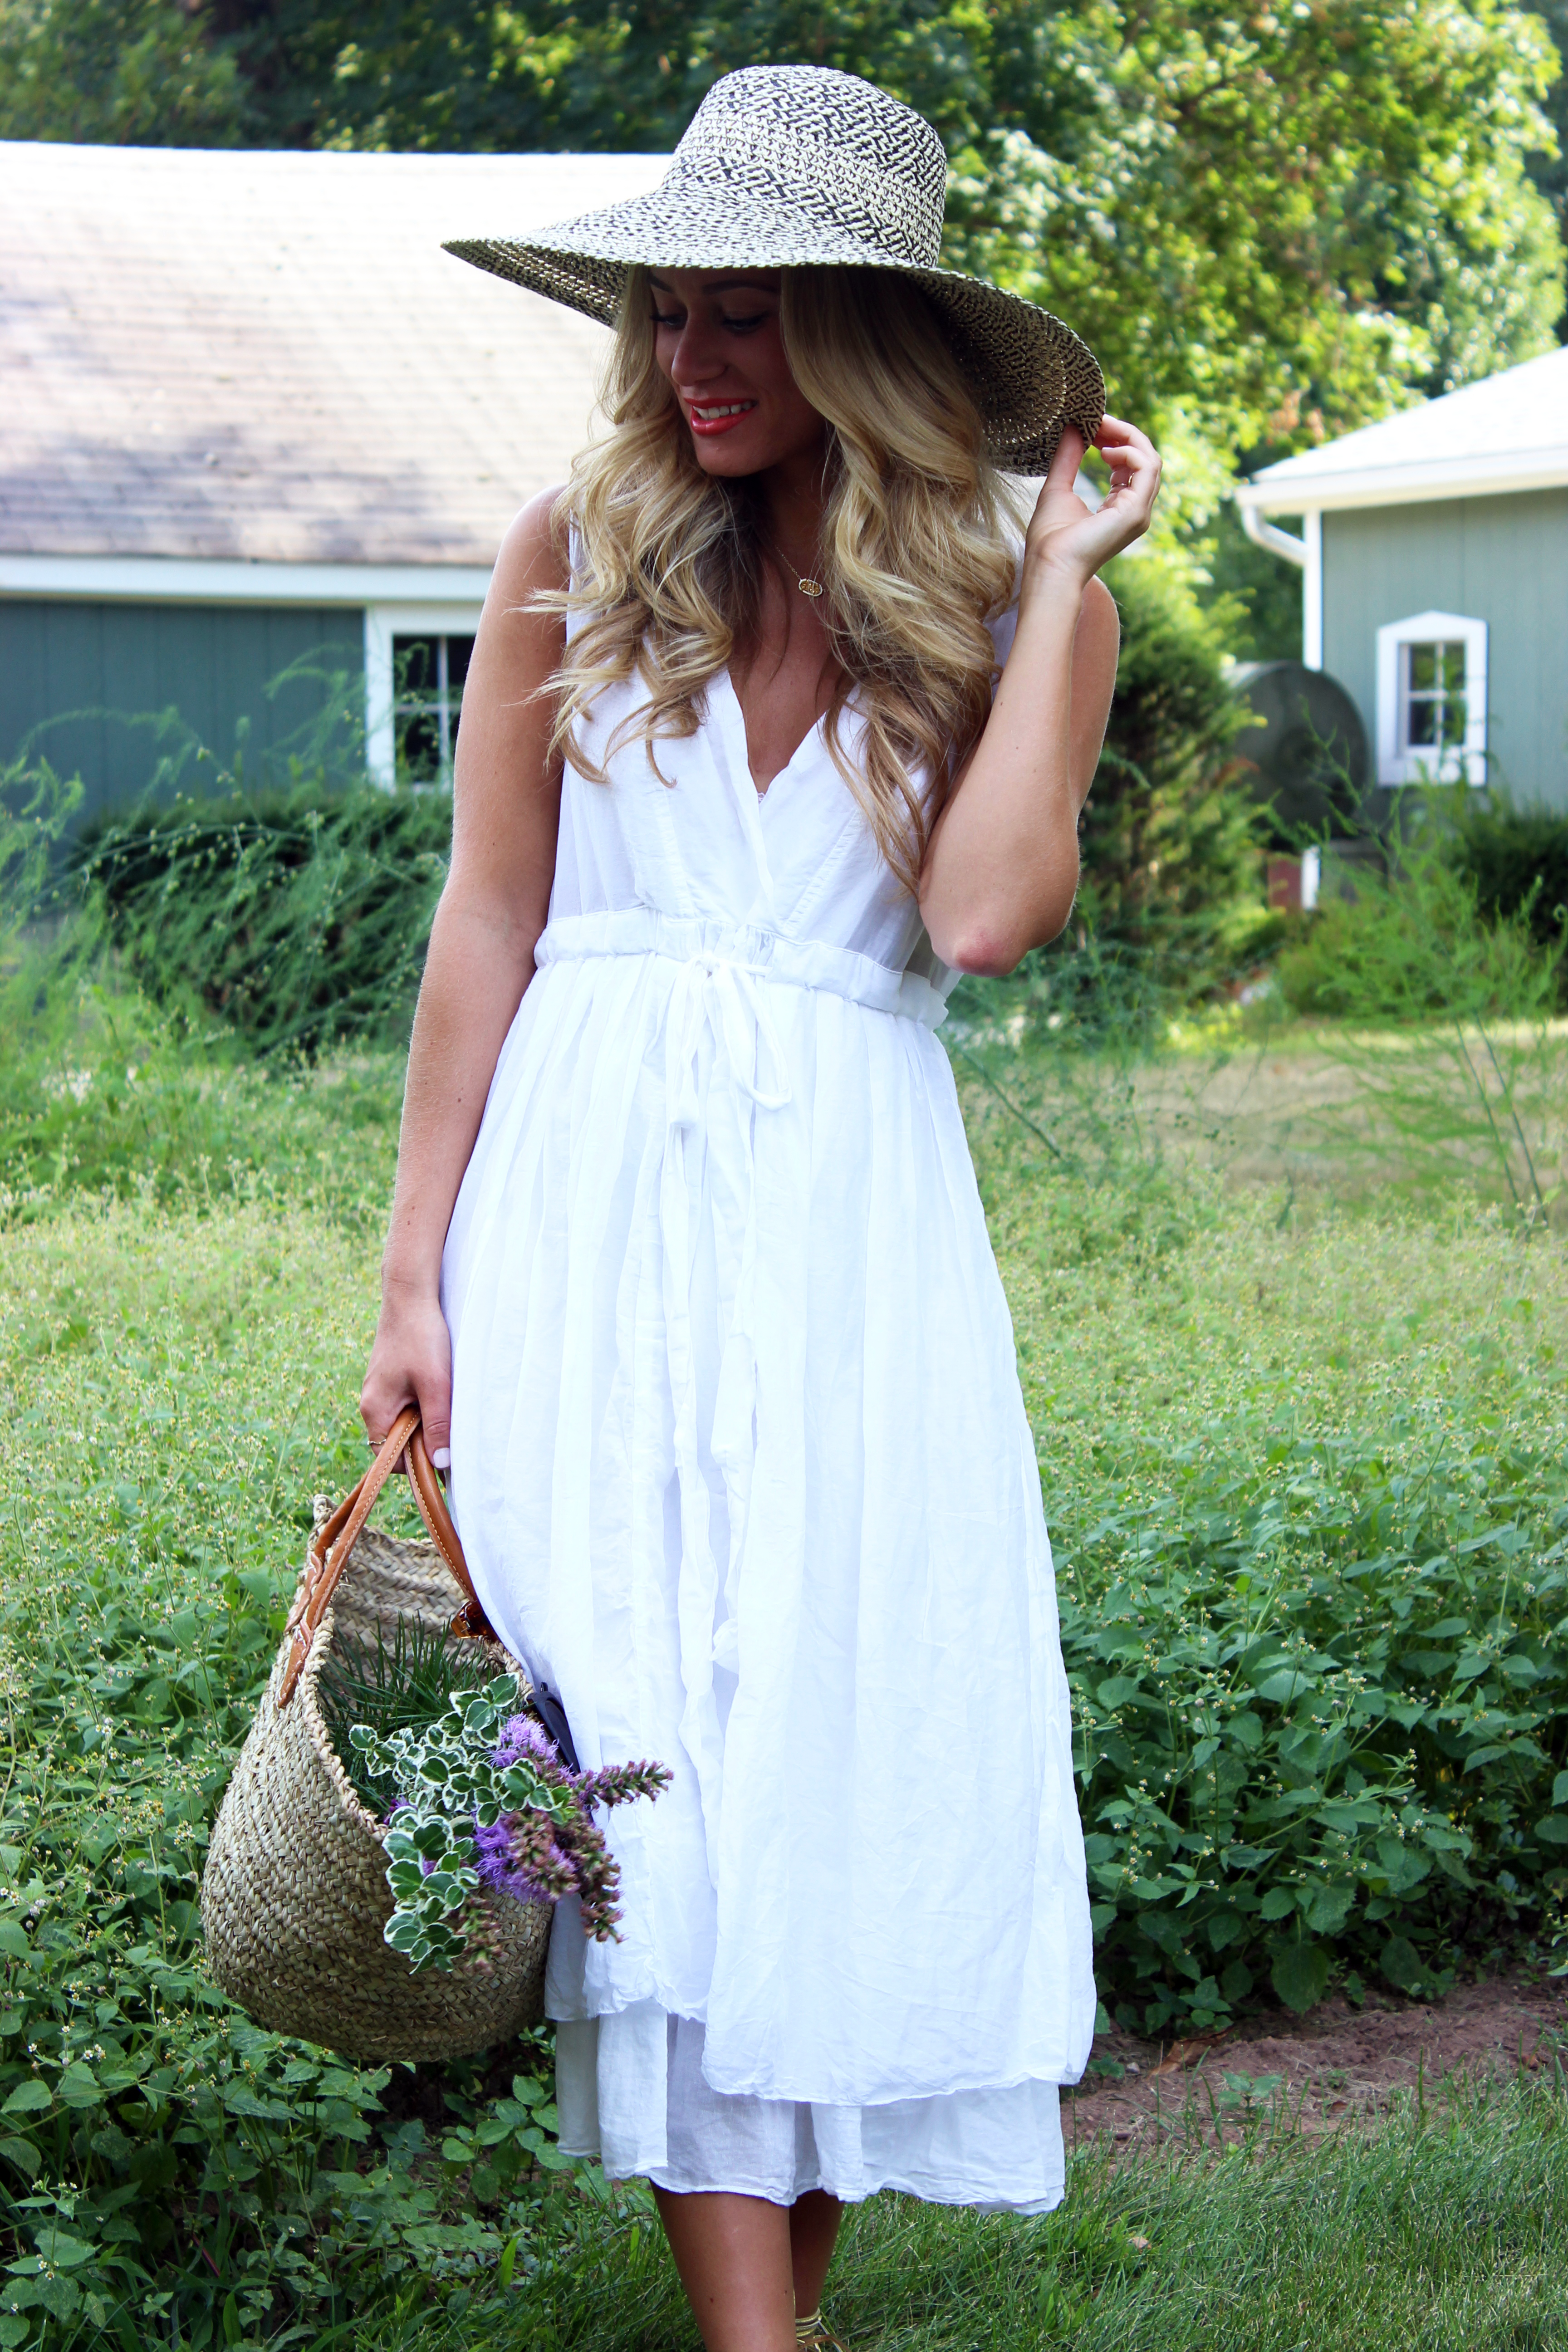 e282cf057e608c Big Floppy Hat with White Dress - Style Cusp